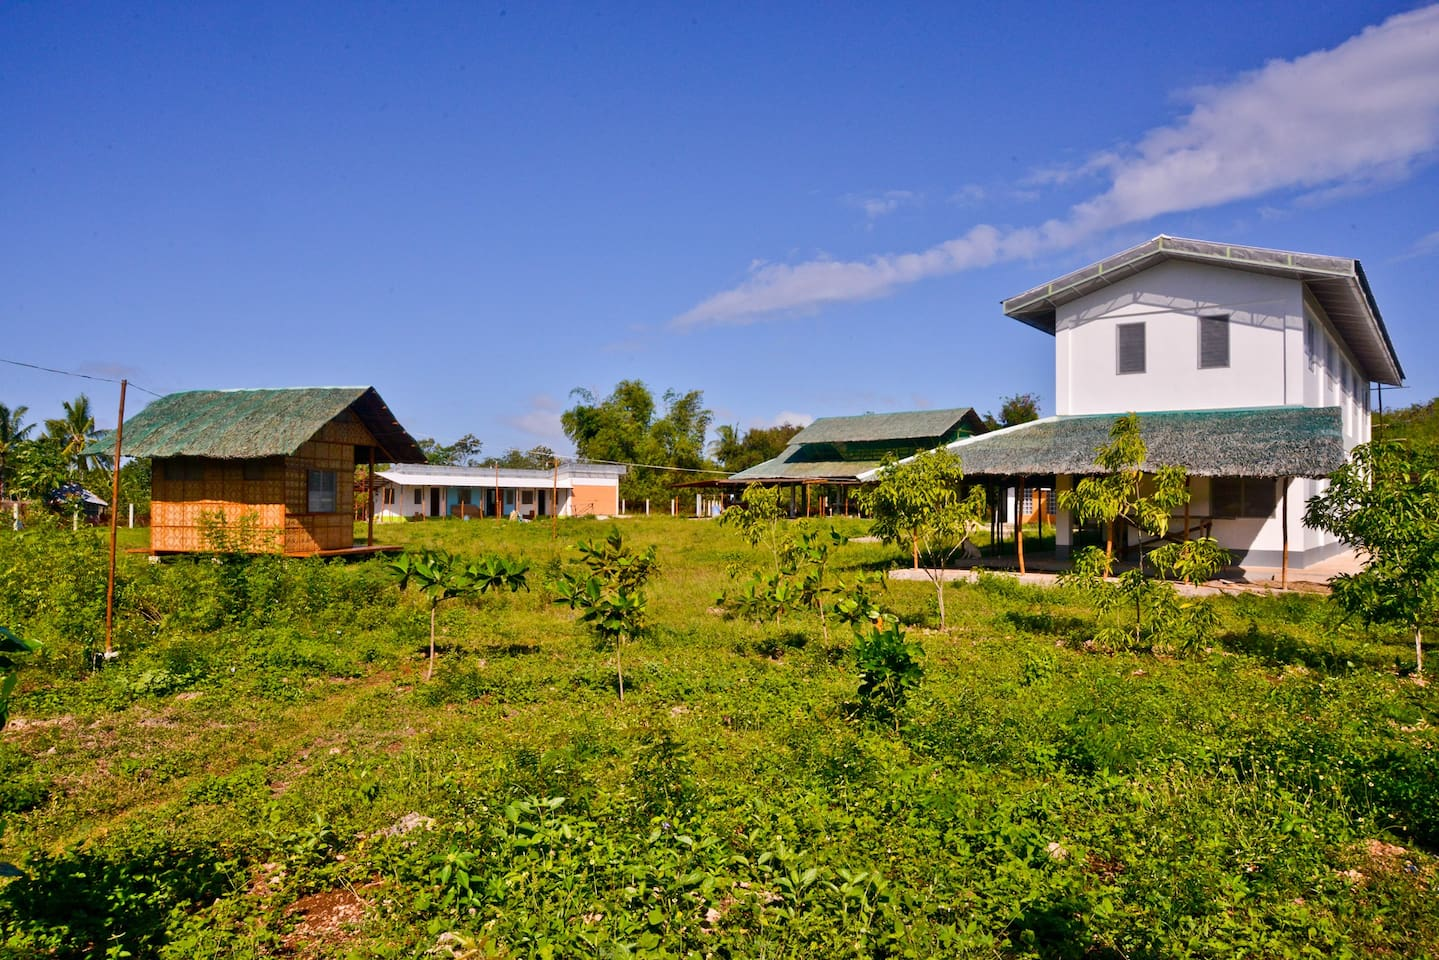 """Our lot. On the left: the """"Nipa Hut."""" On the right: the """"Student House."""" Background: """"Multi-Purpose House"""" (left)  and """"Shadow Roof"""" (center).  All photos by Hans or Richie de Roos © 2016-2019 Photo tours & PhotoShop courses are offered on request!"""